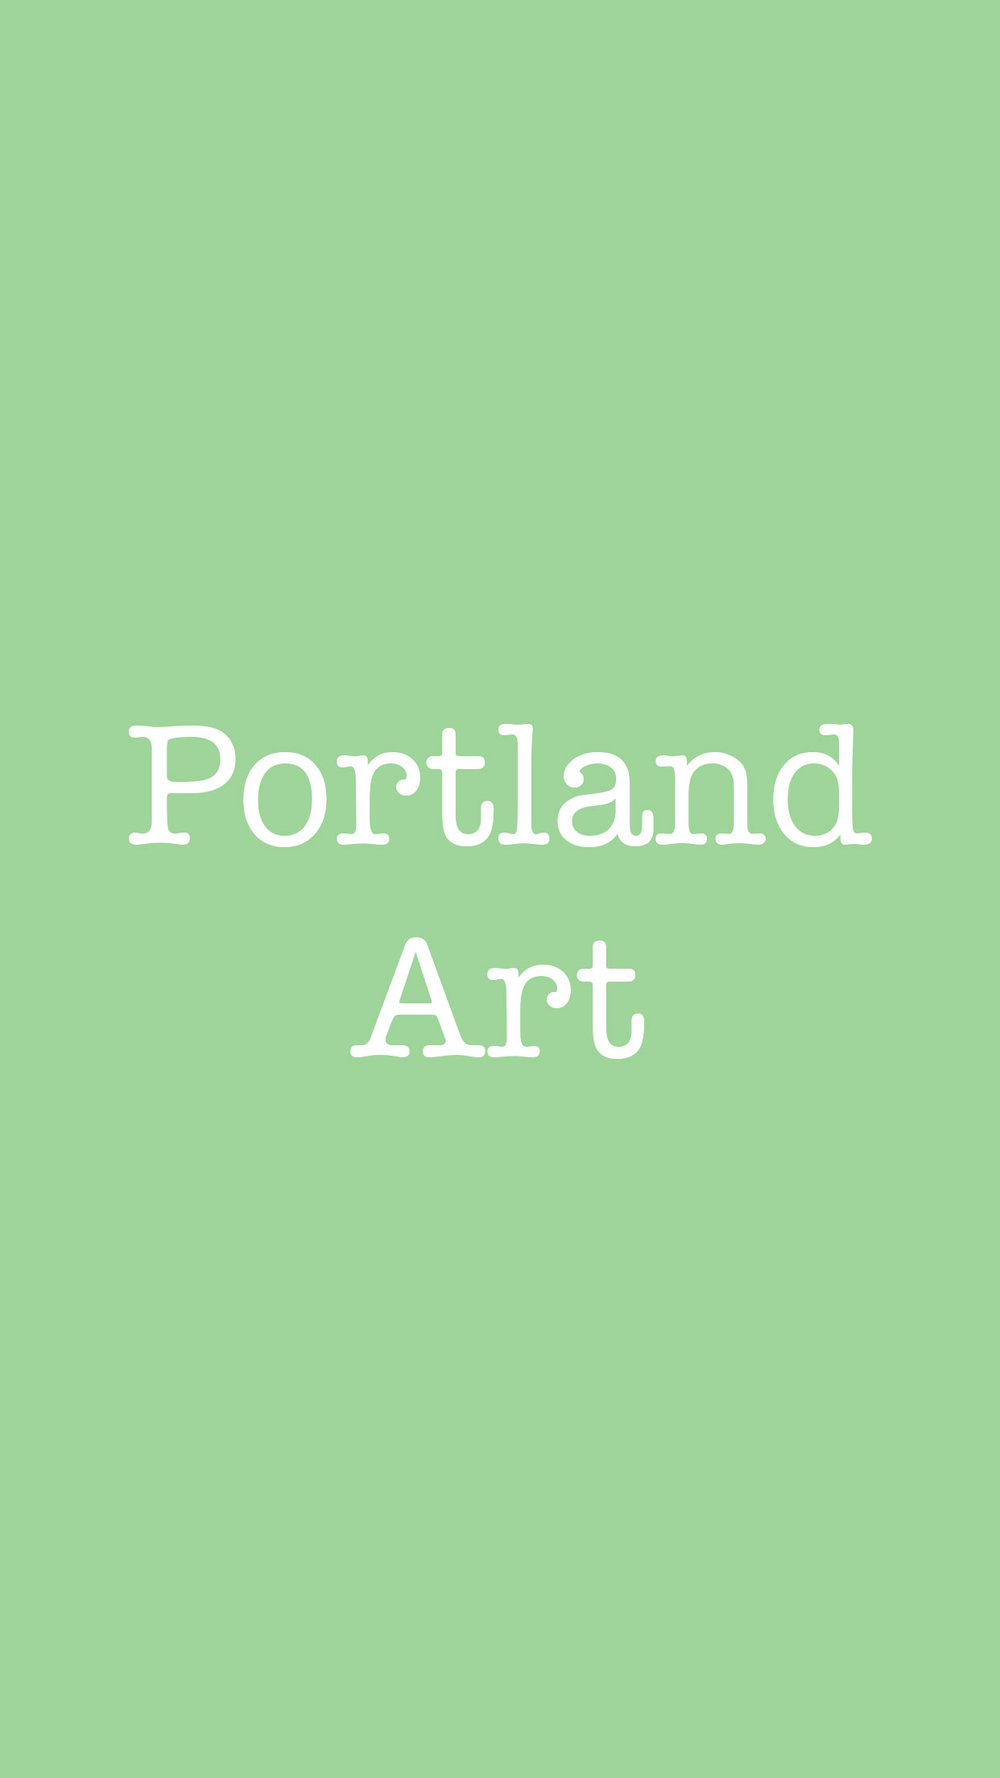 Portland_art_homescreen.jpg